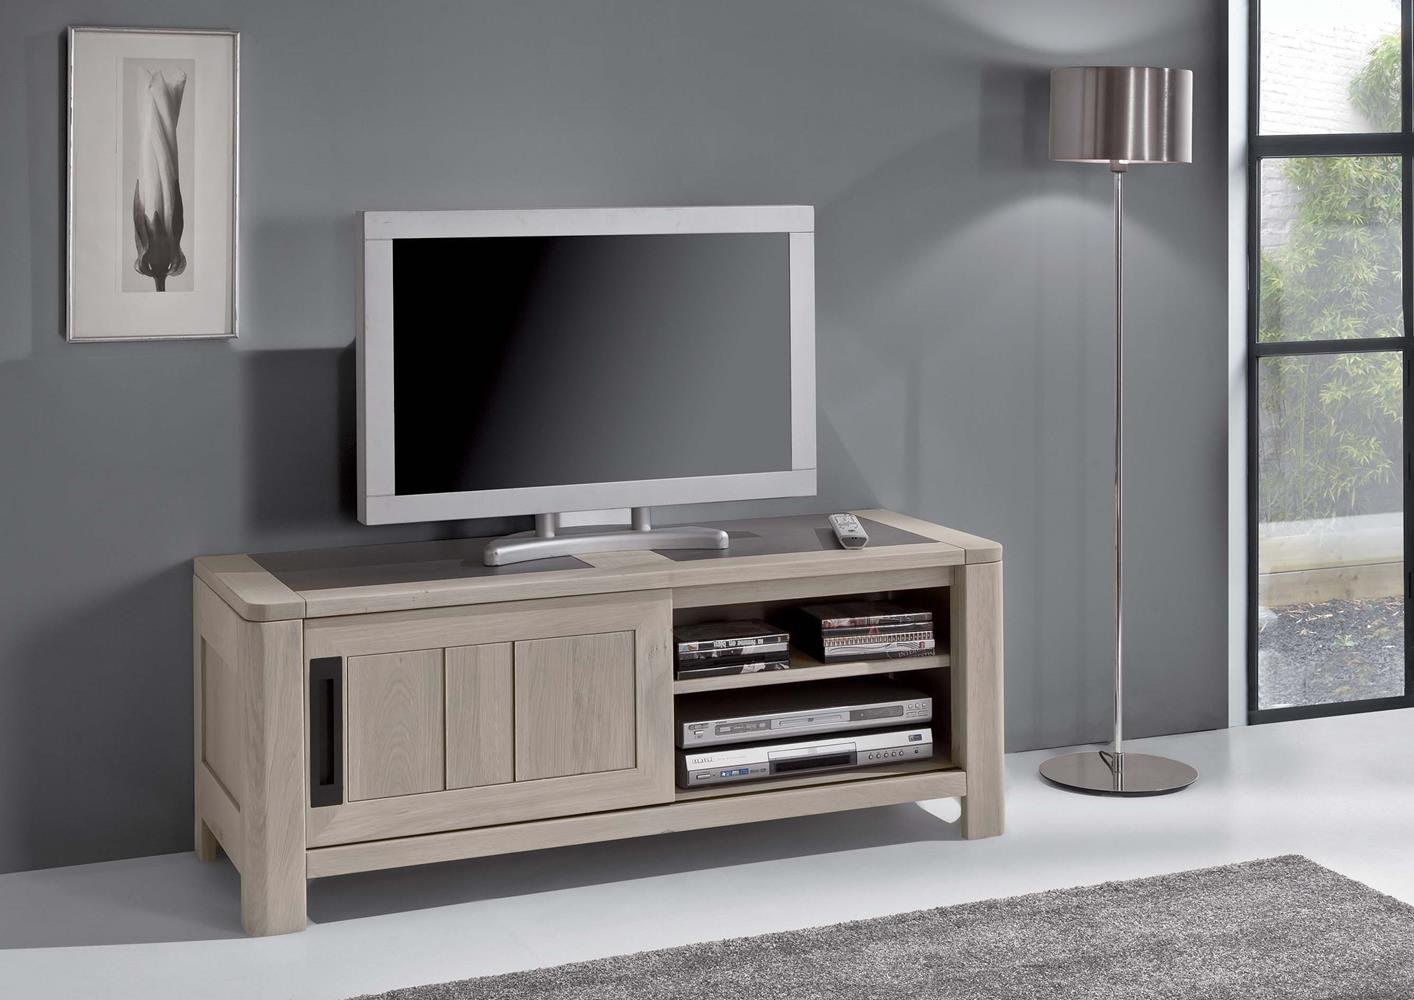 acheter votre meuble tv chene massif et ceramique 1 porte. Black Bedroom Furniture Sets. Home Design Ideas